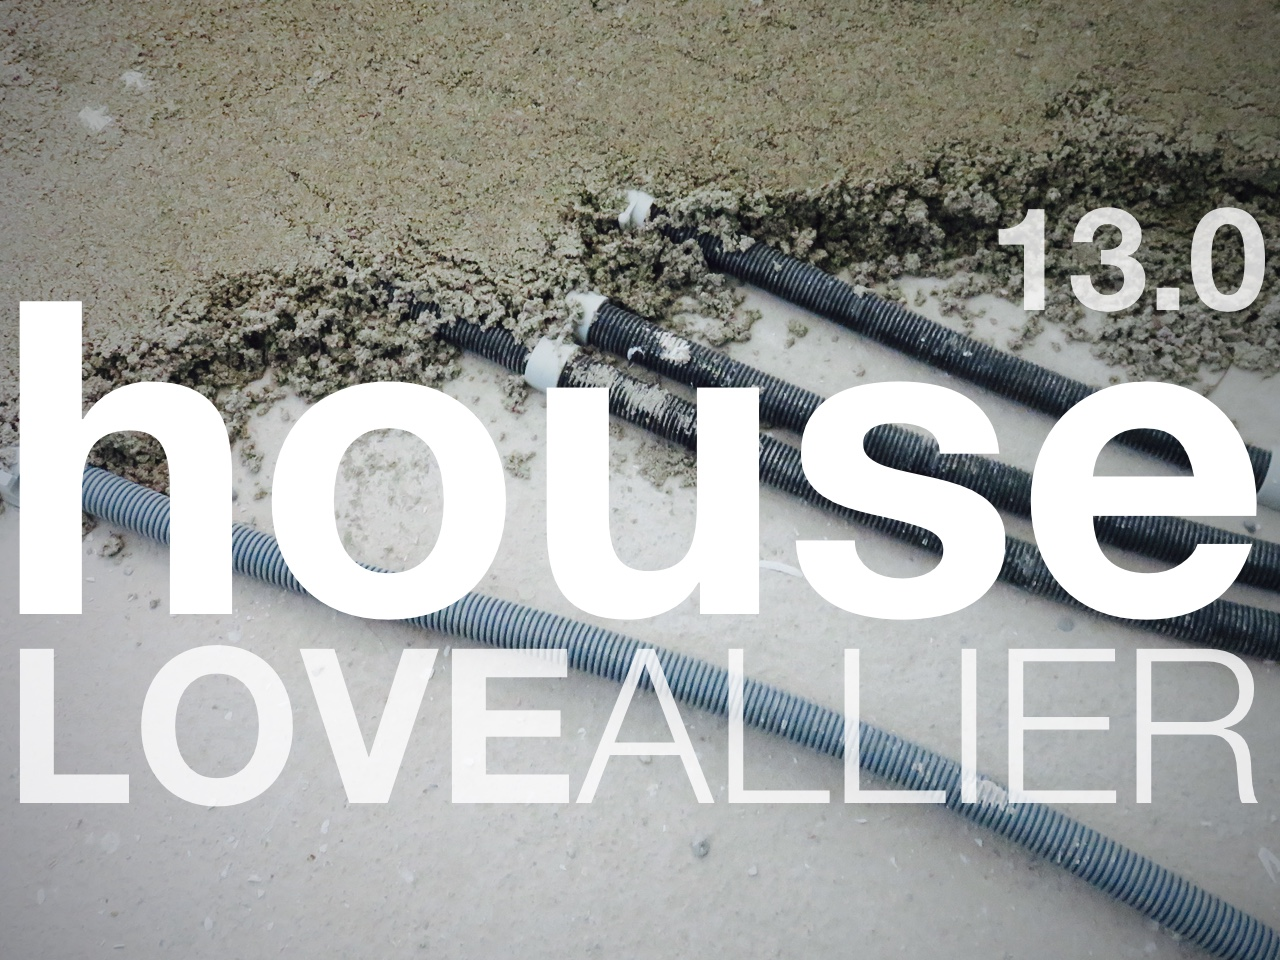 Concrete Covered Electrics and Plumbing - House 13 0 - Love